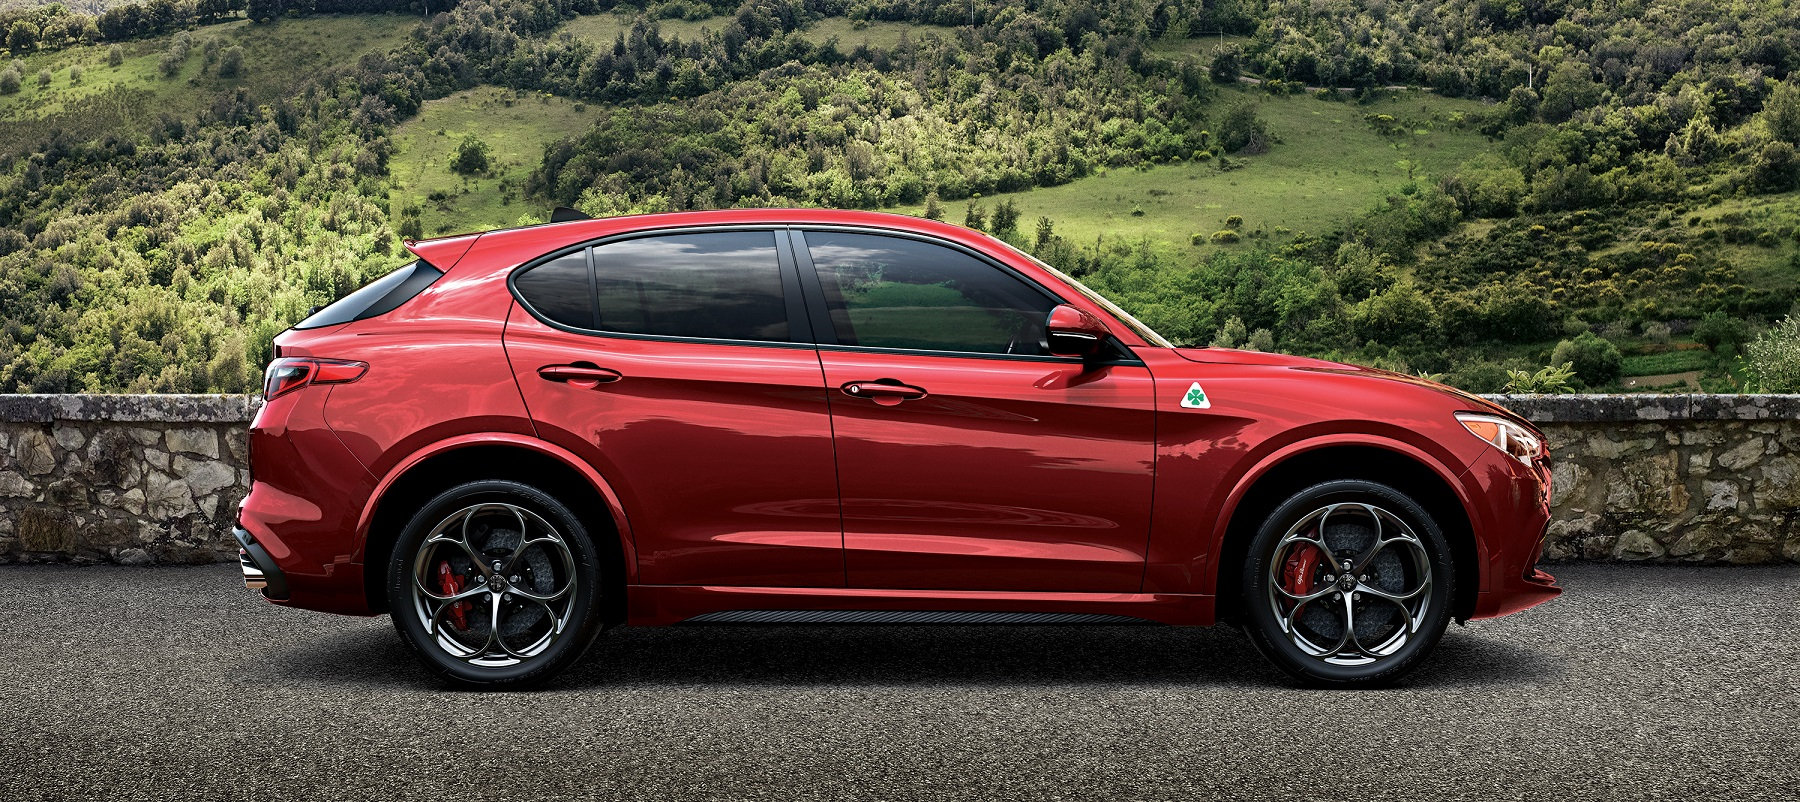 2018 Alfa Romeo Stelvio Italian Performance Suv New On Wheels Is Betting The Will Not Simply Boost Its Sales Numbers But Also Compete Well In Hot And Increasingly Crowded Midsize